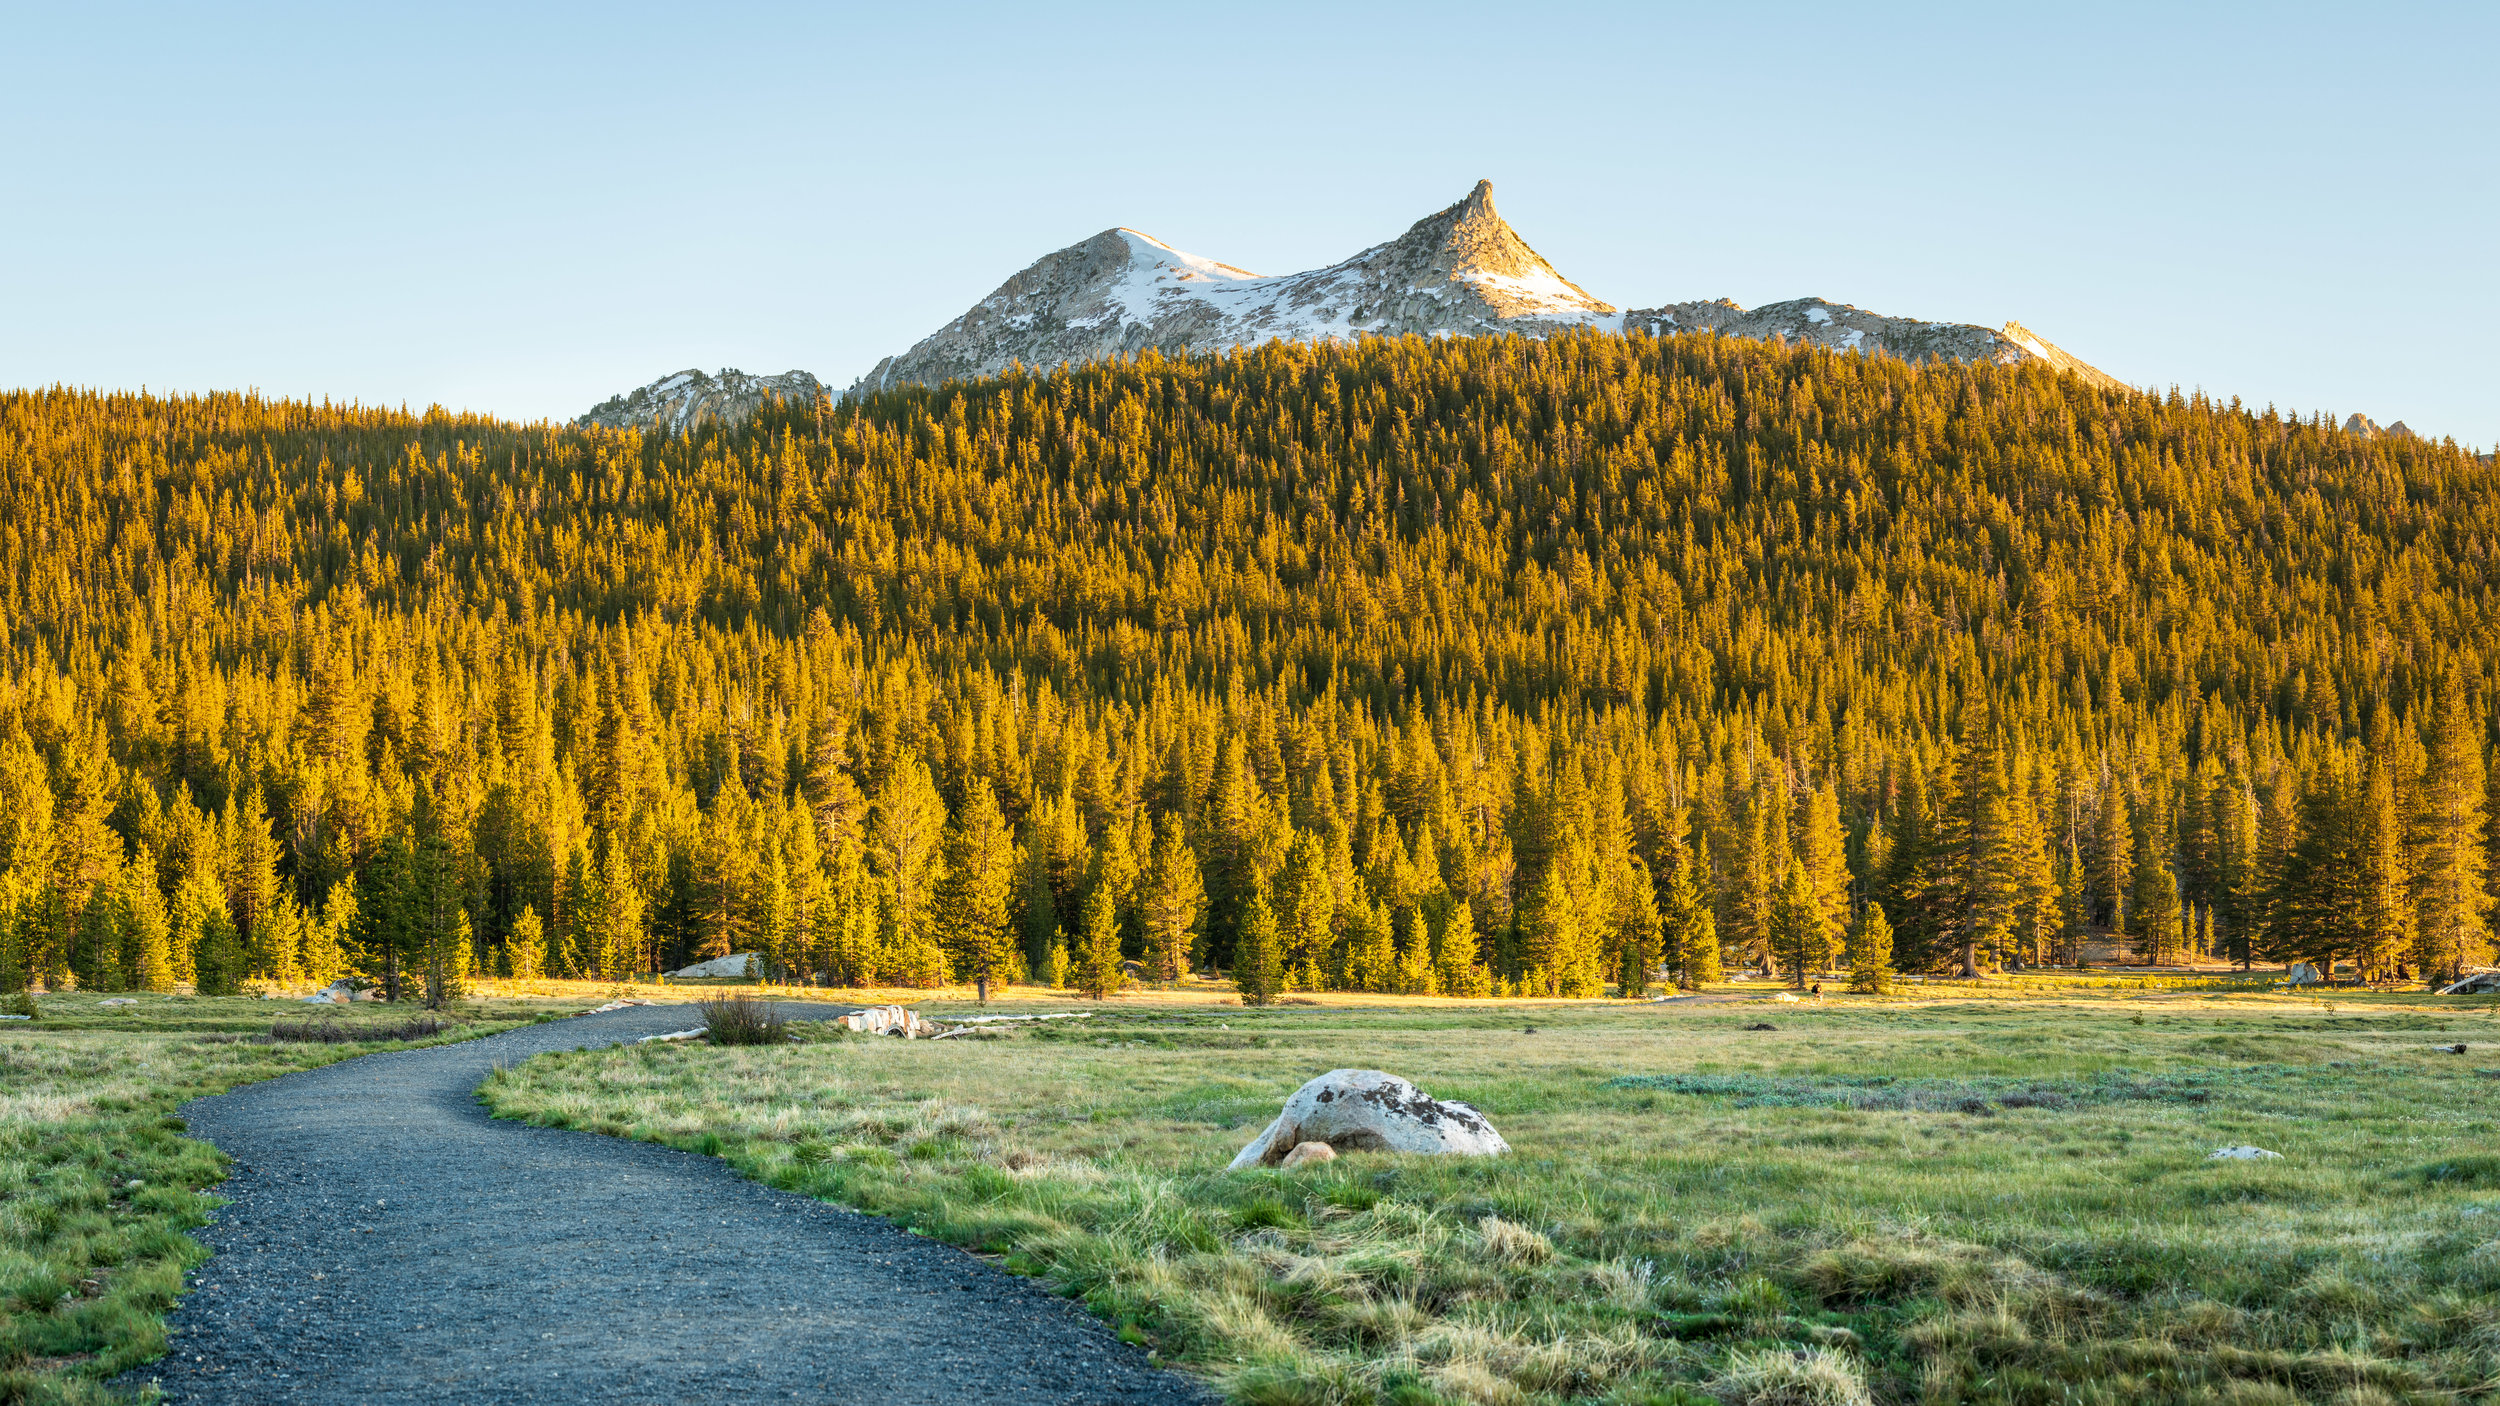 """A panoramic shot of Cathedral Peak at Tuolumne Meadow. (5 shots panoramic stitched, 1/20 sec at f/8.0, iso64, 70-200mm len @70mm) GPS coordinate: 37°52'21.8""""N 119°22'10.5""""W"""